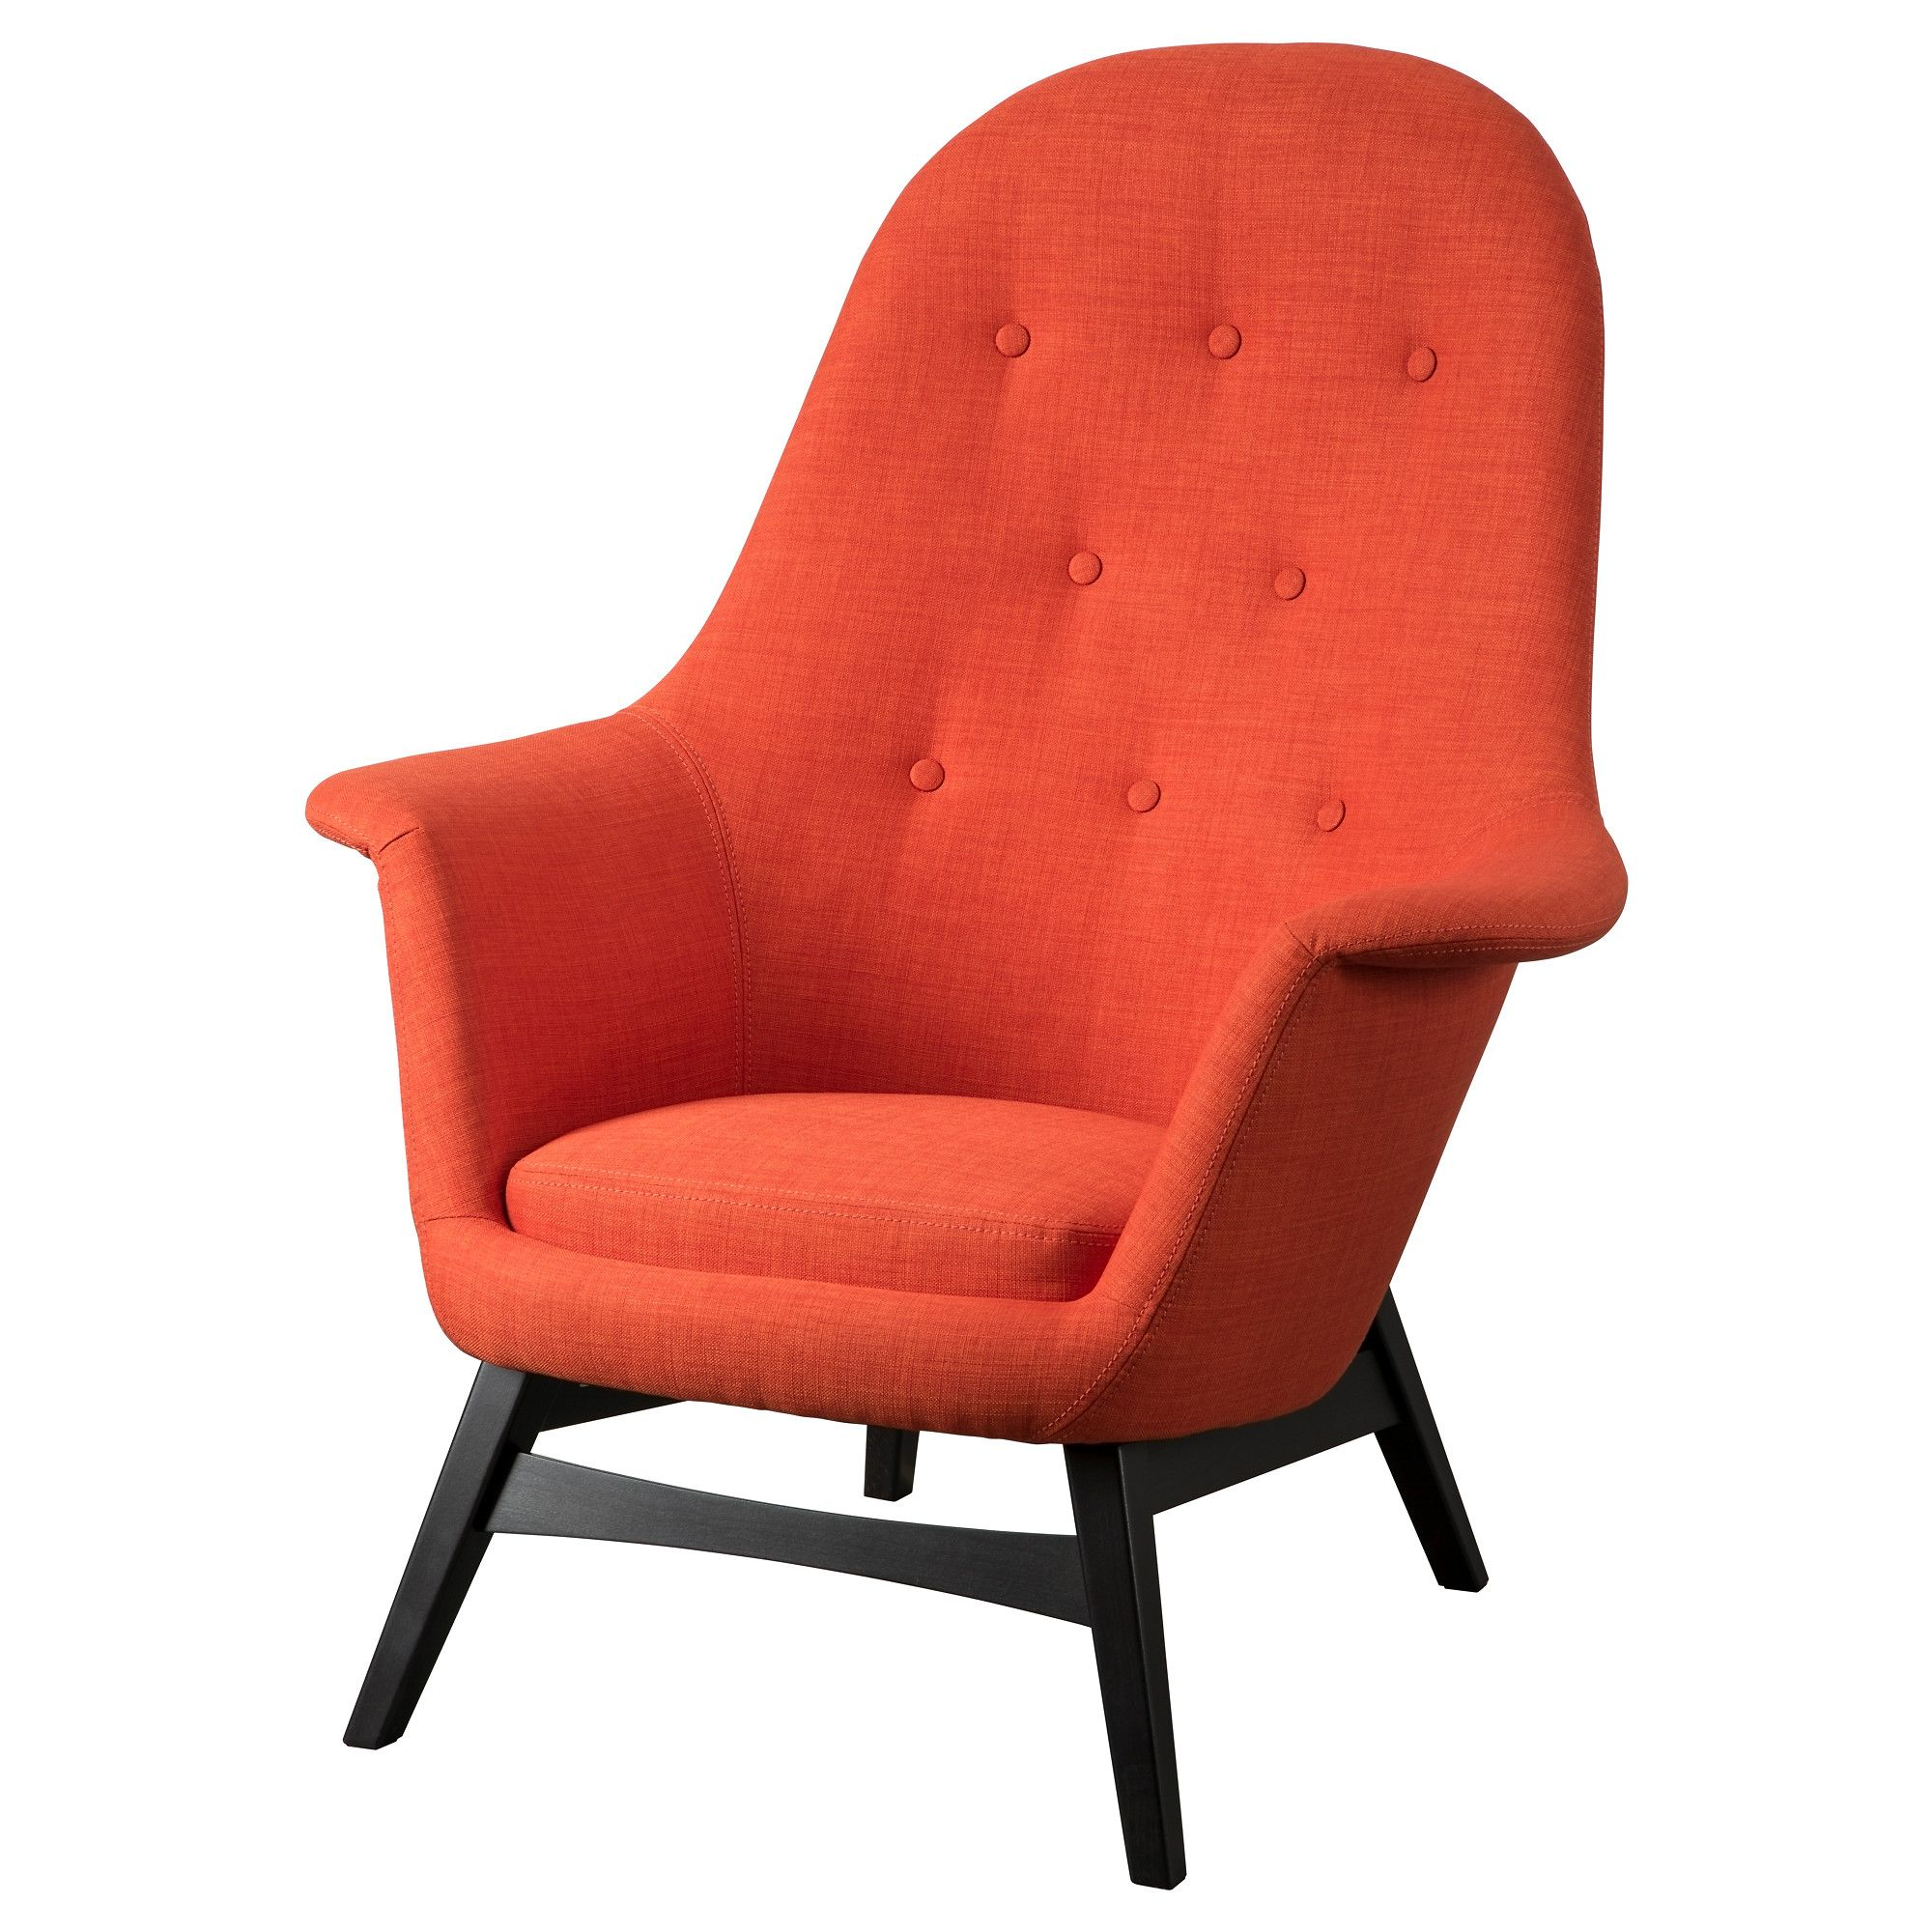 BENARP Armchair Skiftebo Orange